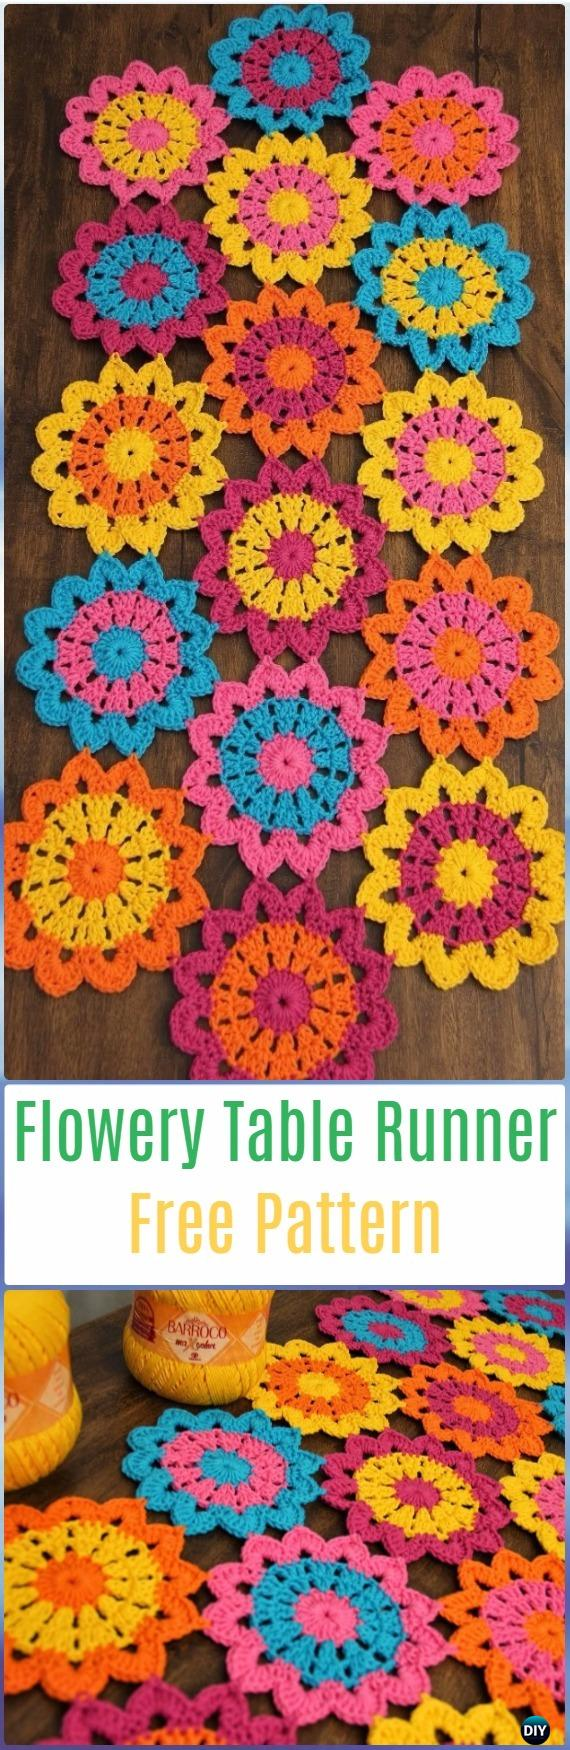 Crochet Flowery Table Runner Free Pattern- Crochet Table Runner Free Patterns